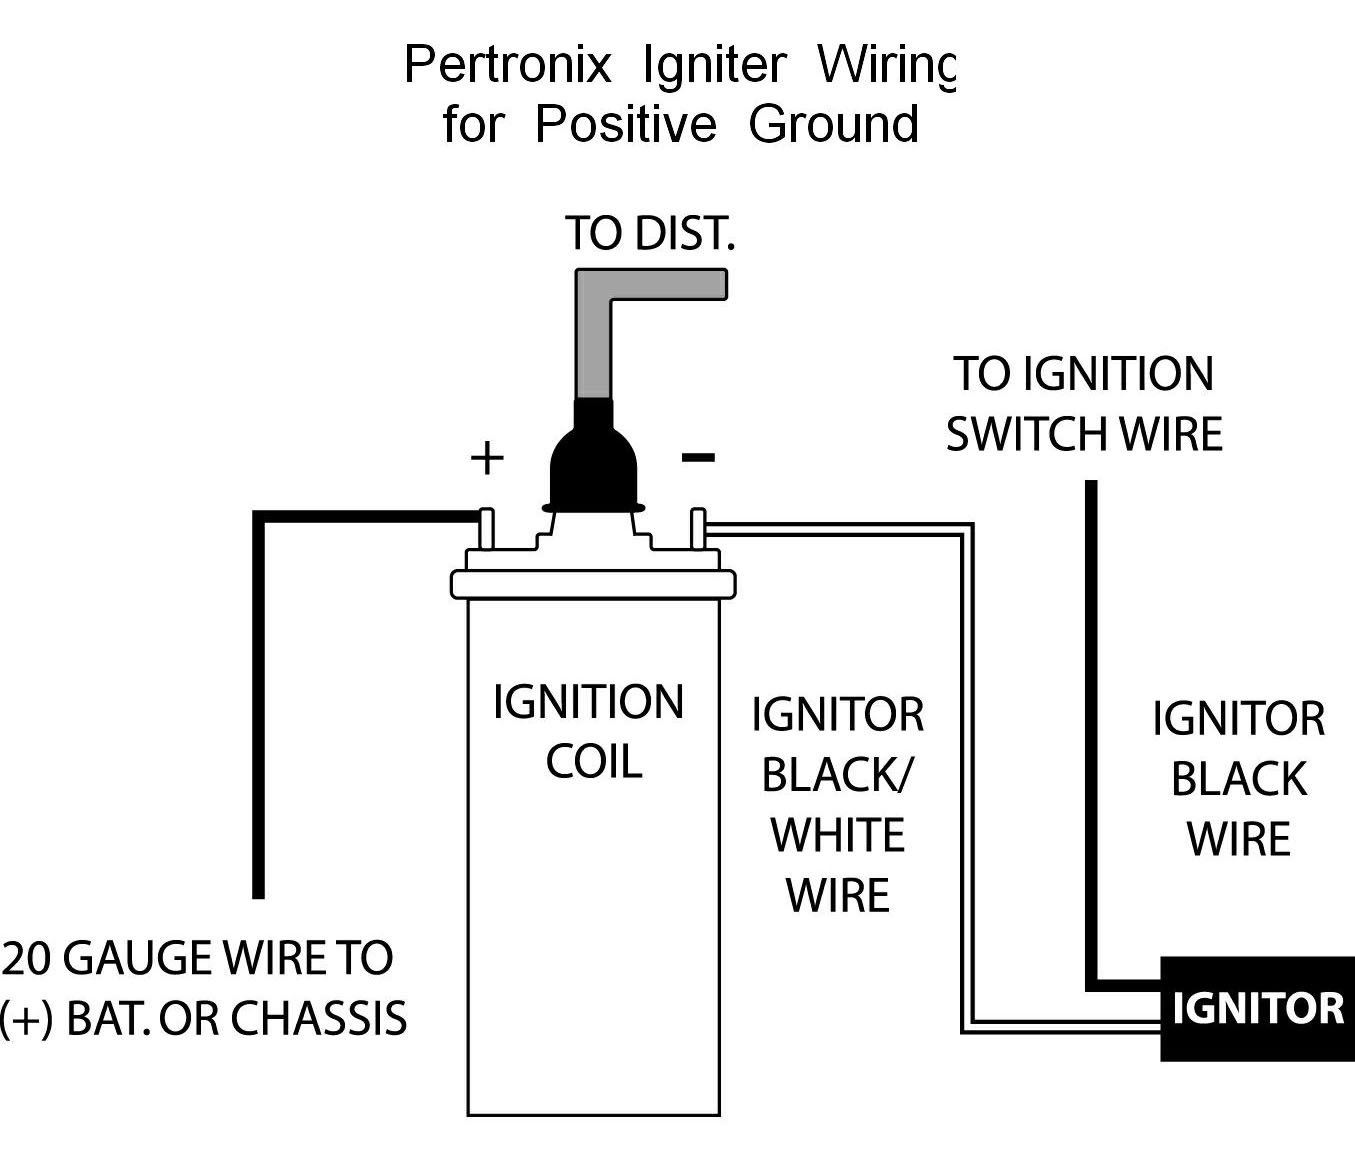 PerPosGndWiring pertronix positive ground wiring 6 volt coil wiring diagram at eliteediting.co